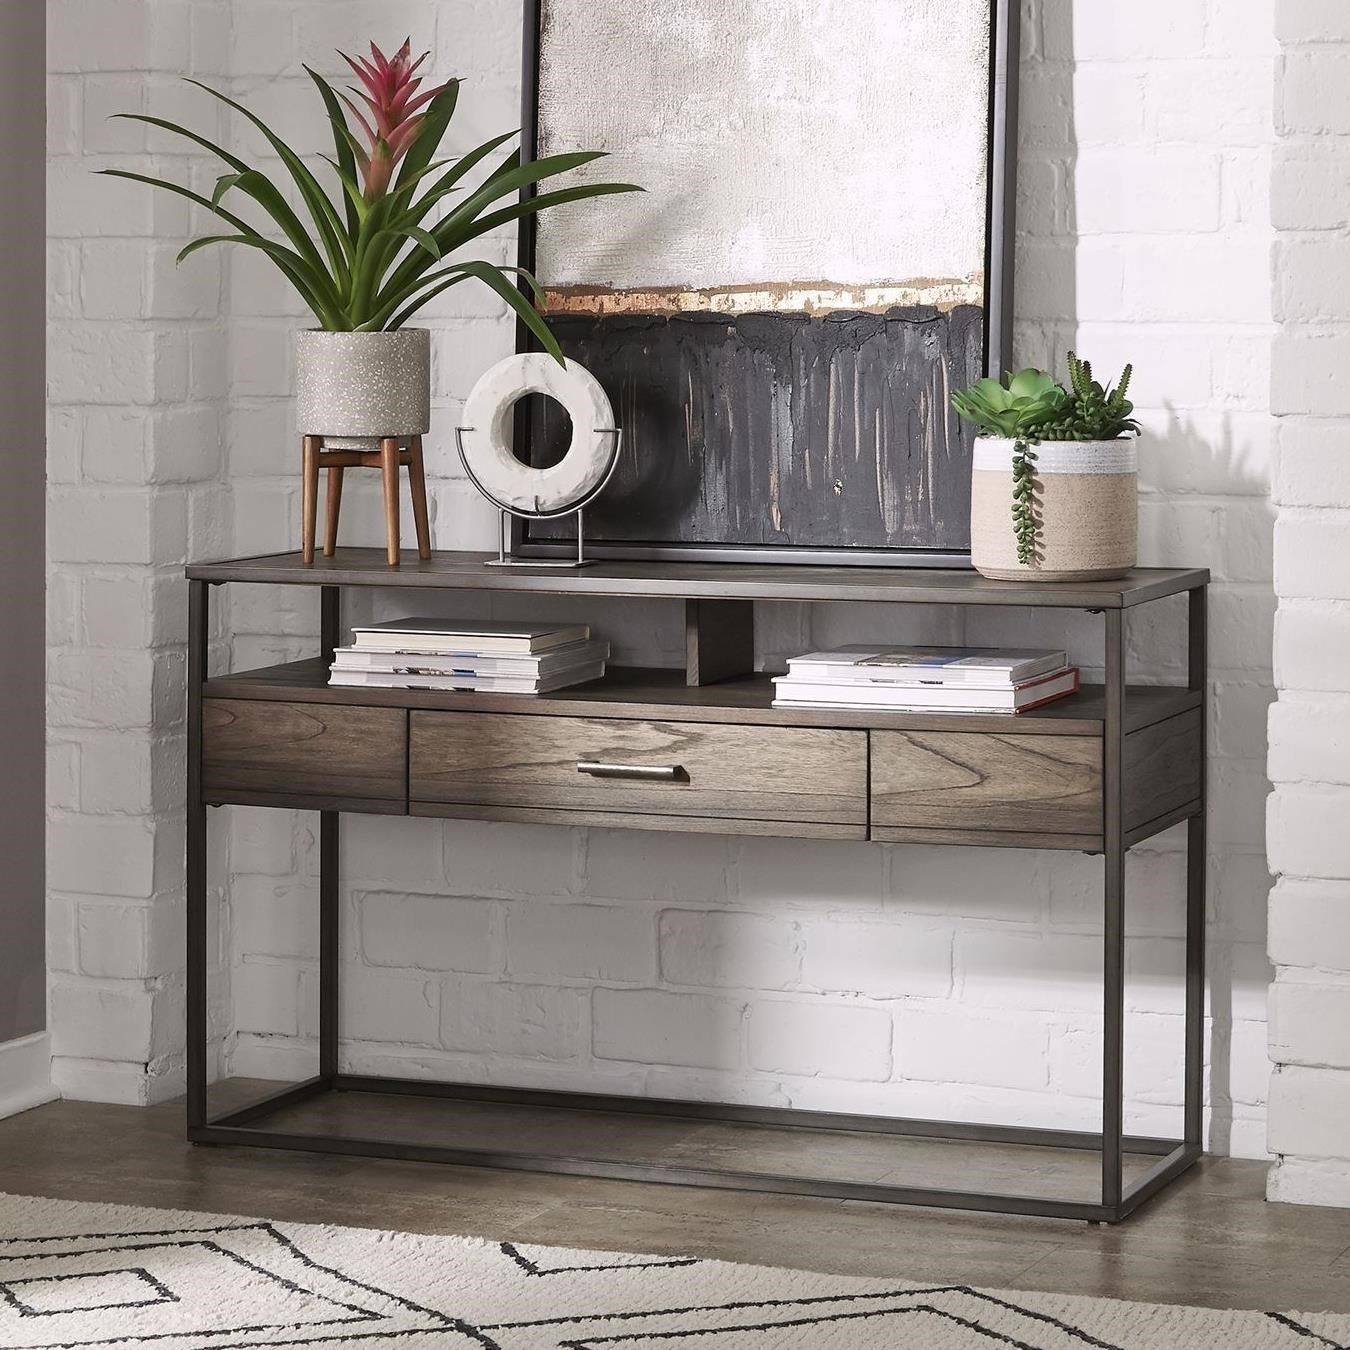 Contemporary Sofa Table with Drawer